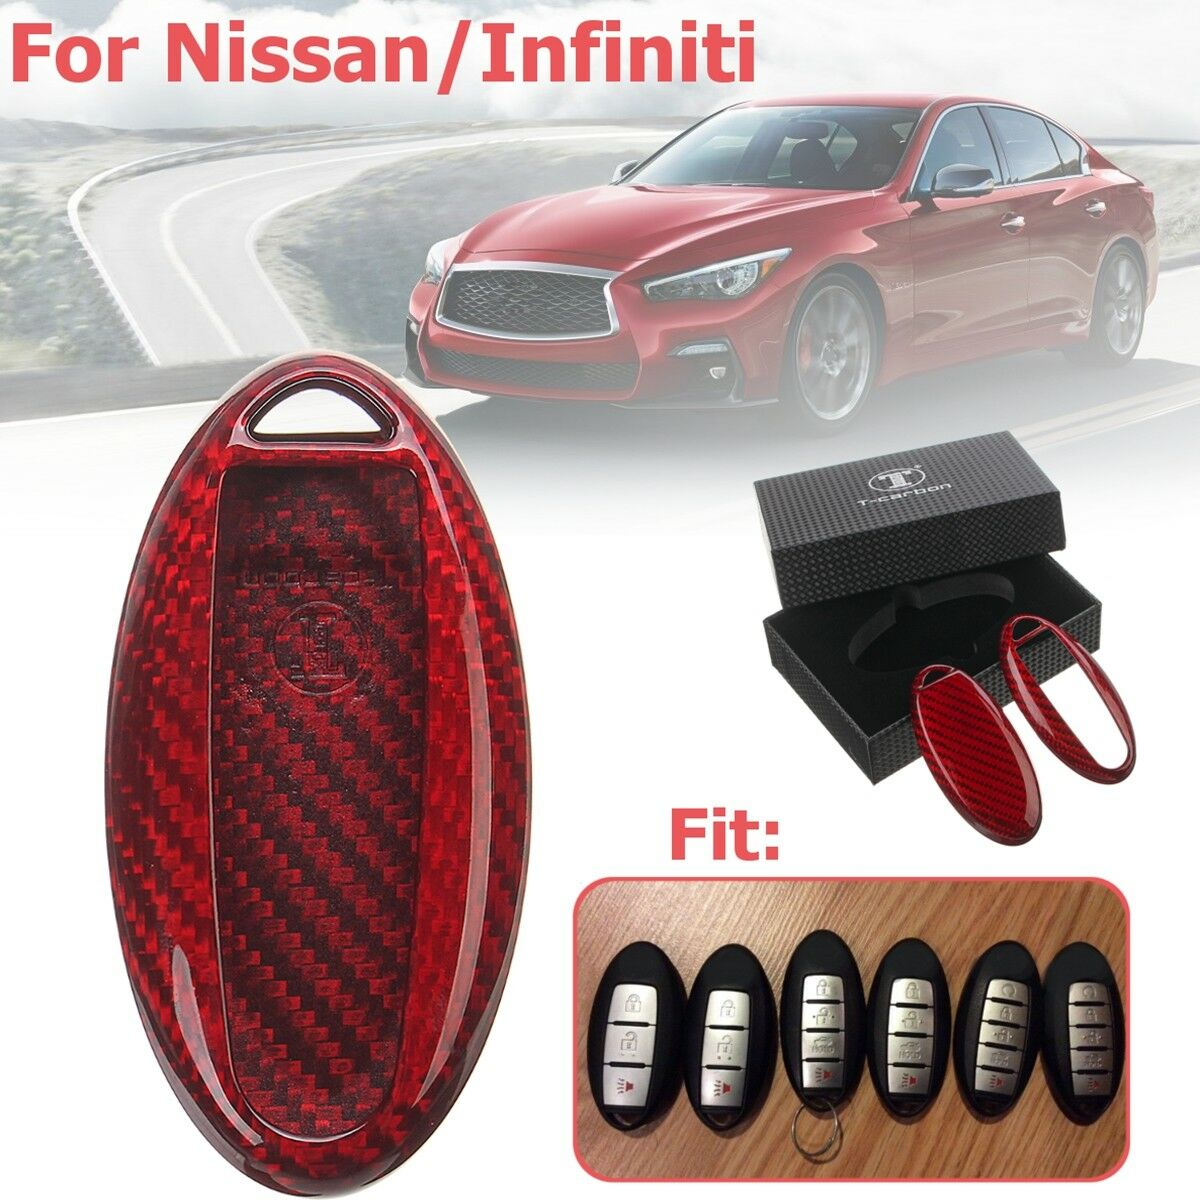 Red Carbon Fiber Remote Fob Smart Key Case Shell For Nissan Infiniti Clicker Alarm Kbrastu15 Fits Norton Secured Powered By Verisign